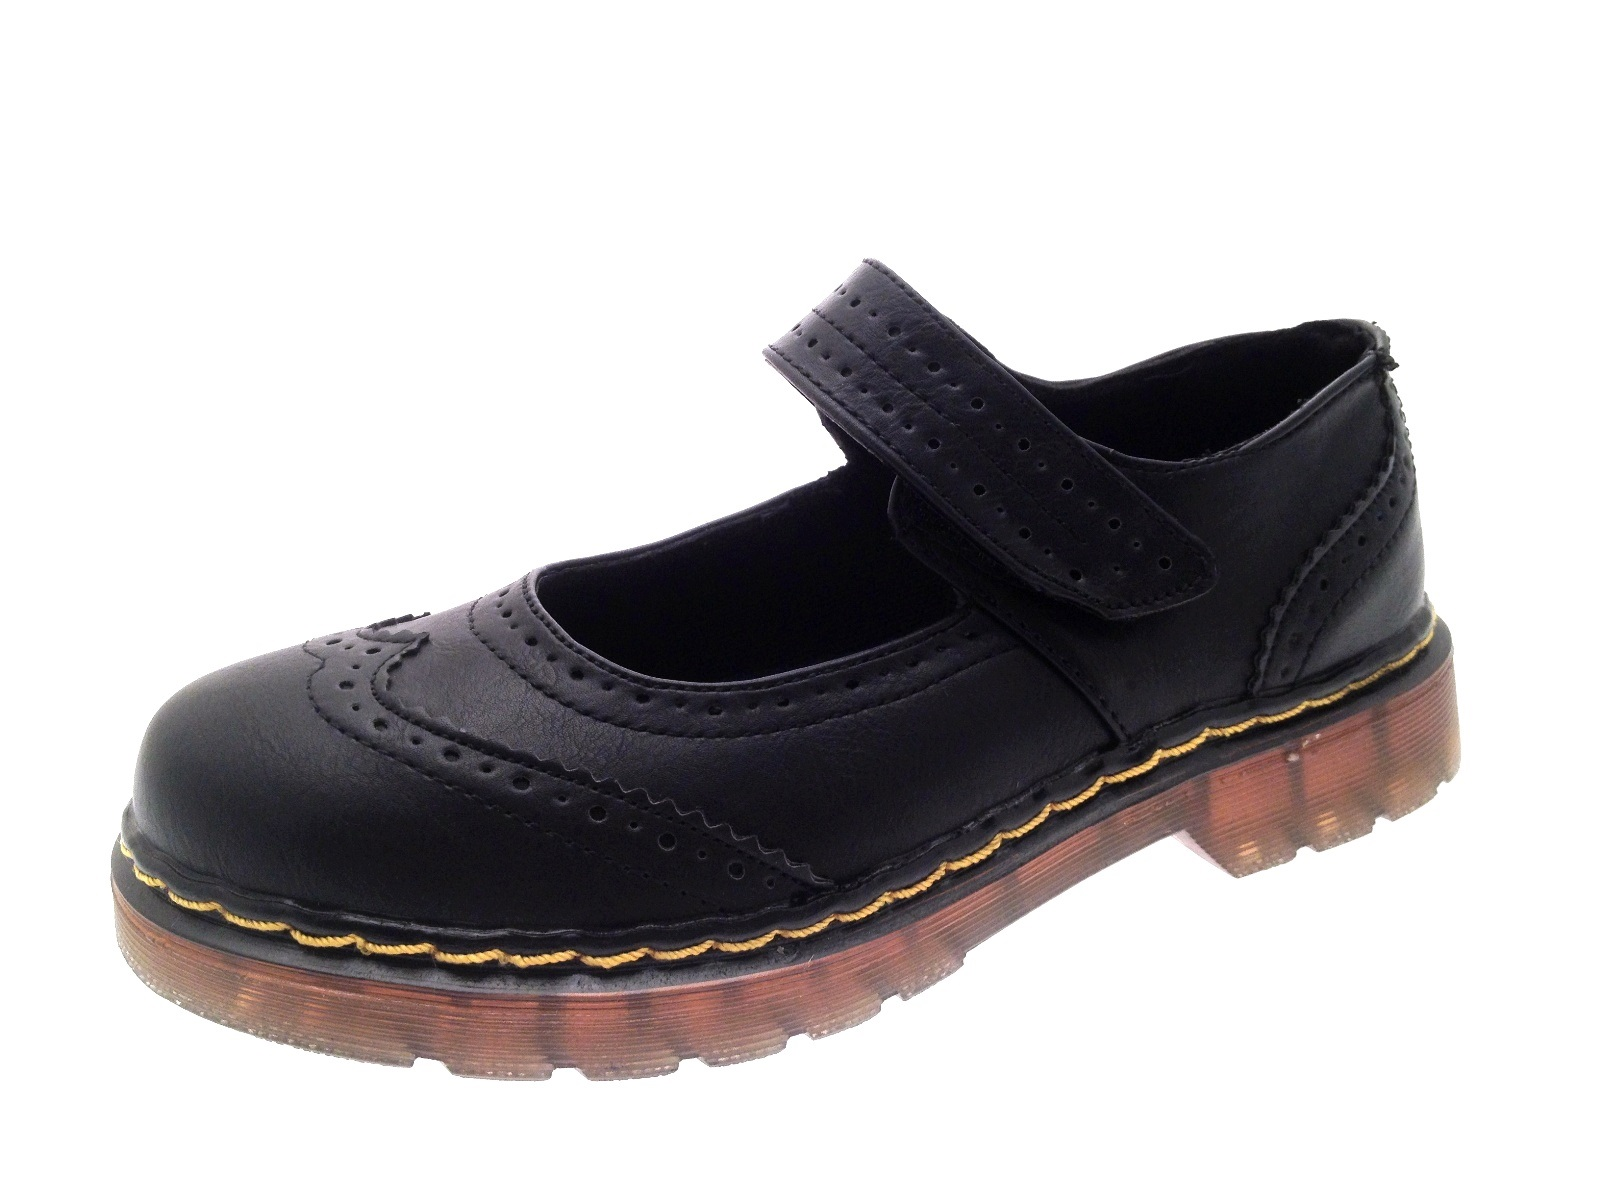 Flat Black Mary Jane Shoes Uk